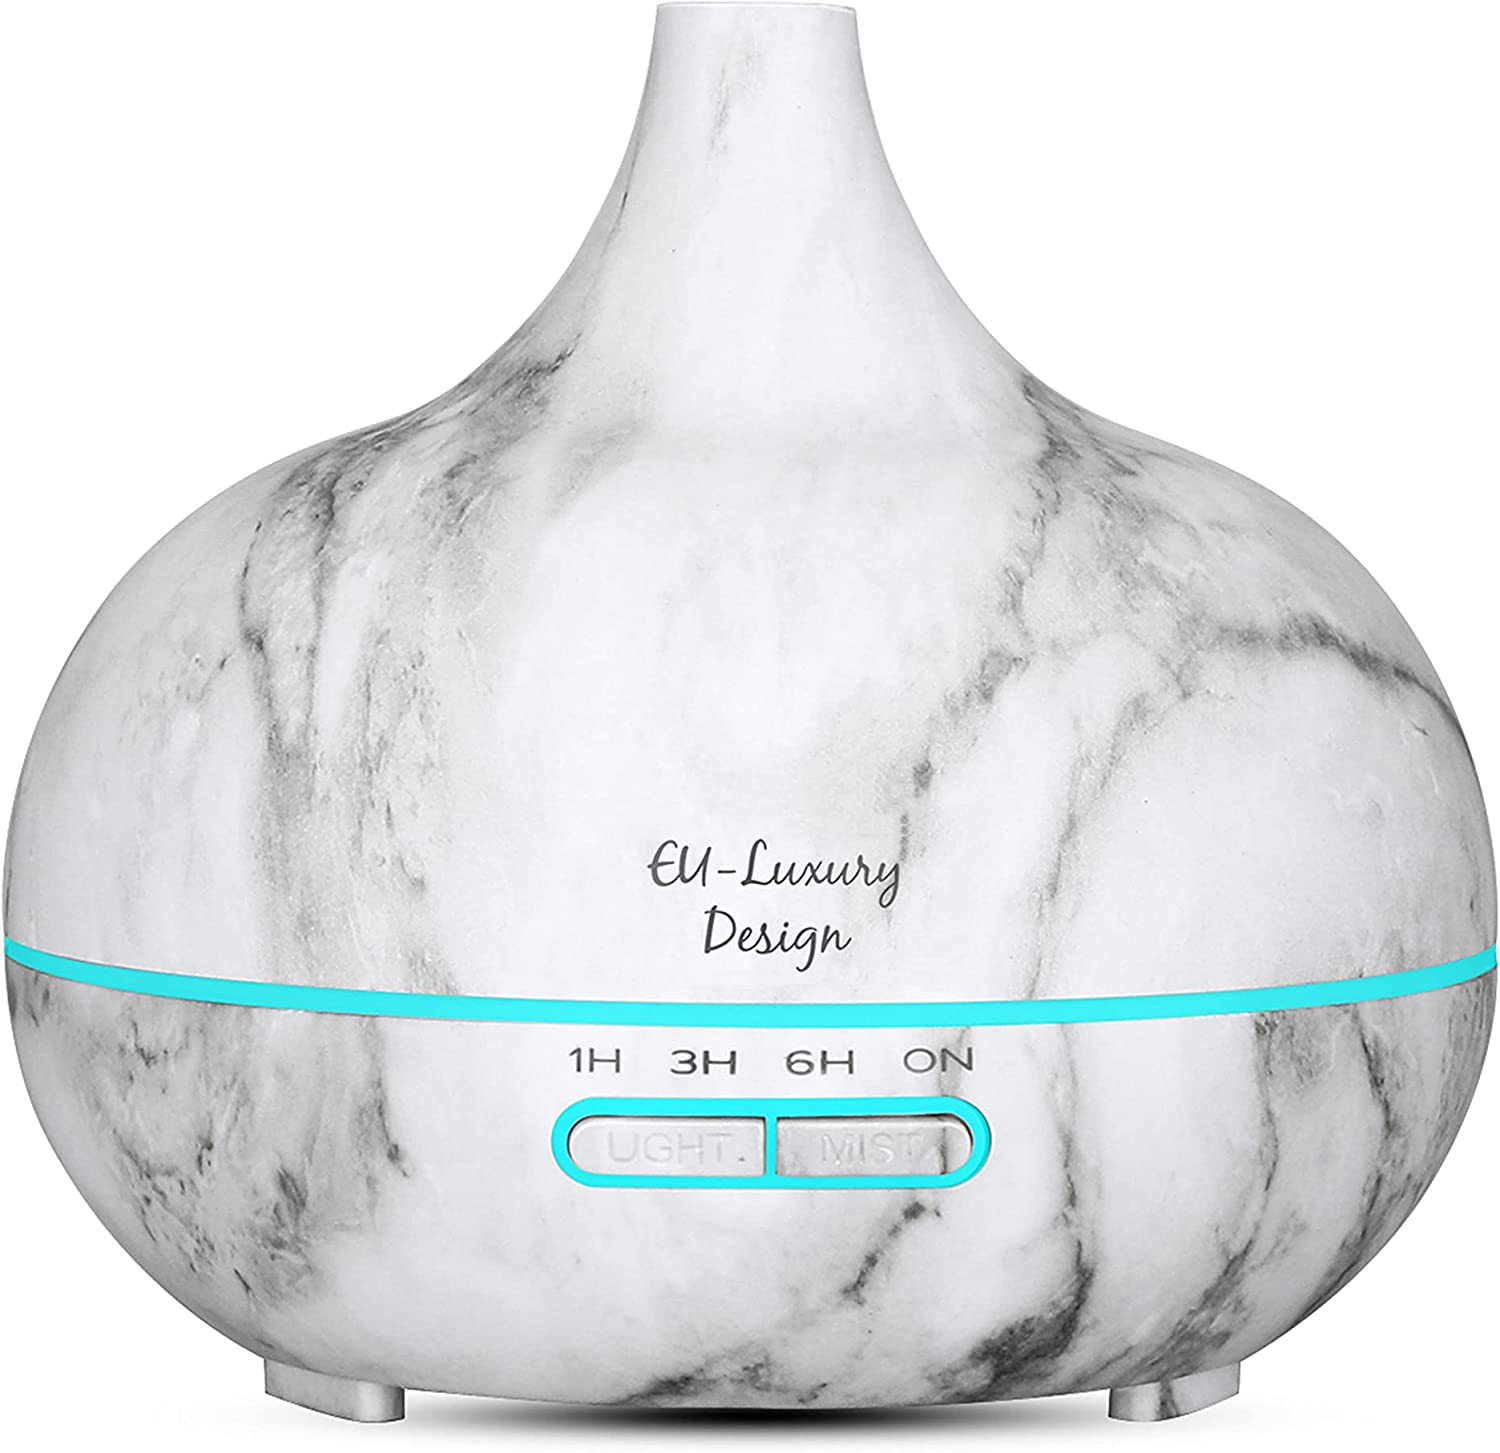 Essential Modern White Aroma Oil Diffuser & Marble Humidifier with 7 Color Led Lights, Aromatherapy Home Decoration.